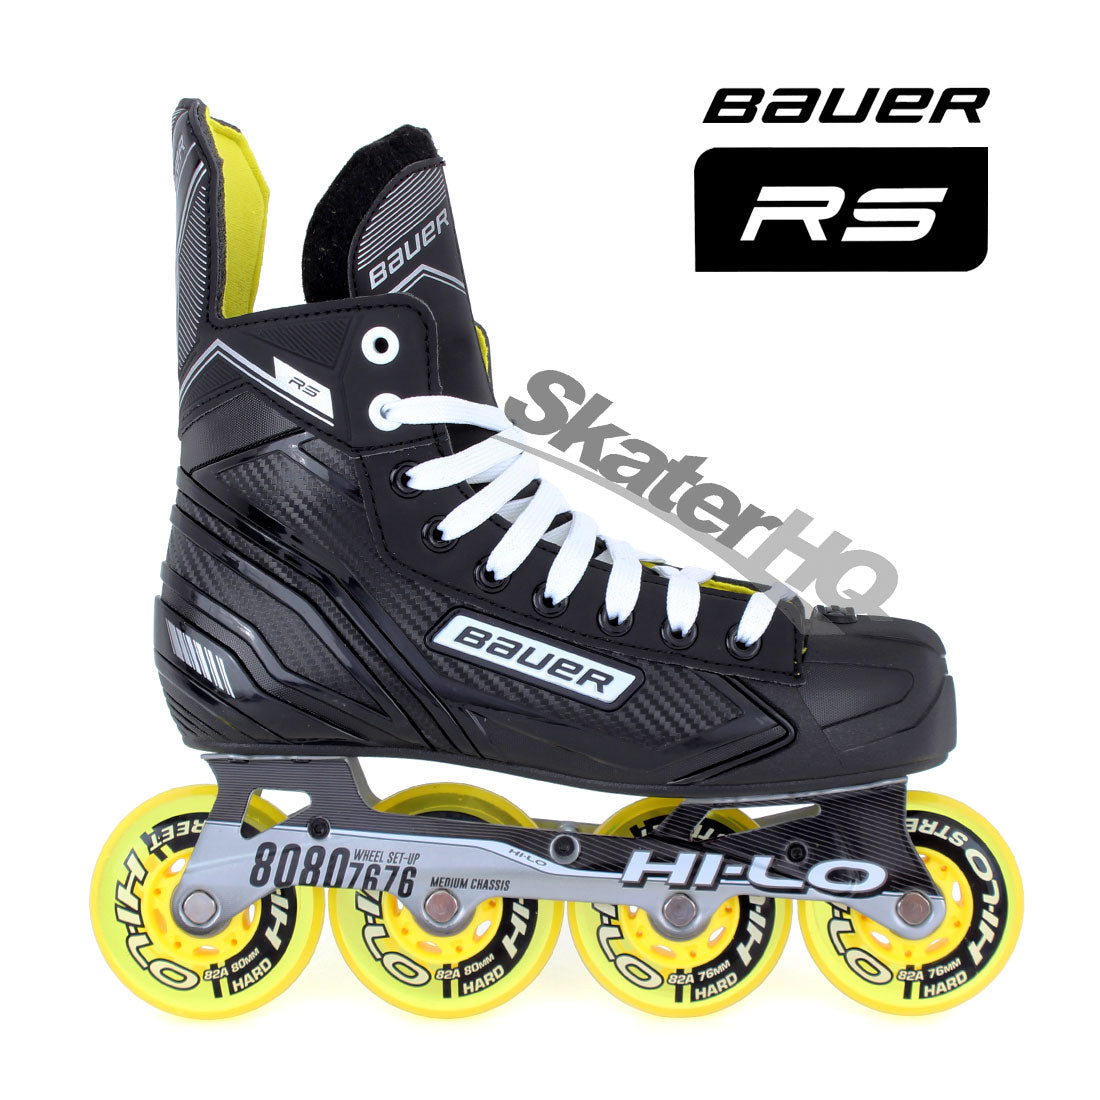 Bauer RS Black/Yellow 7.0 / 8.5US